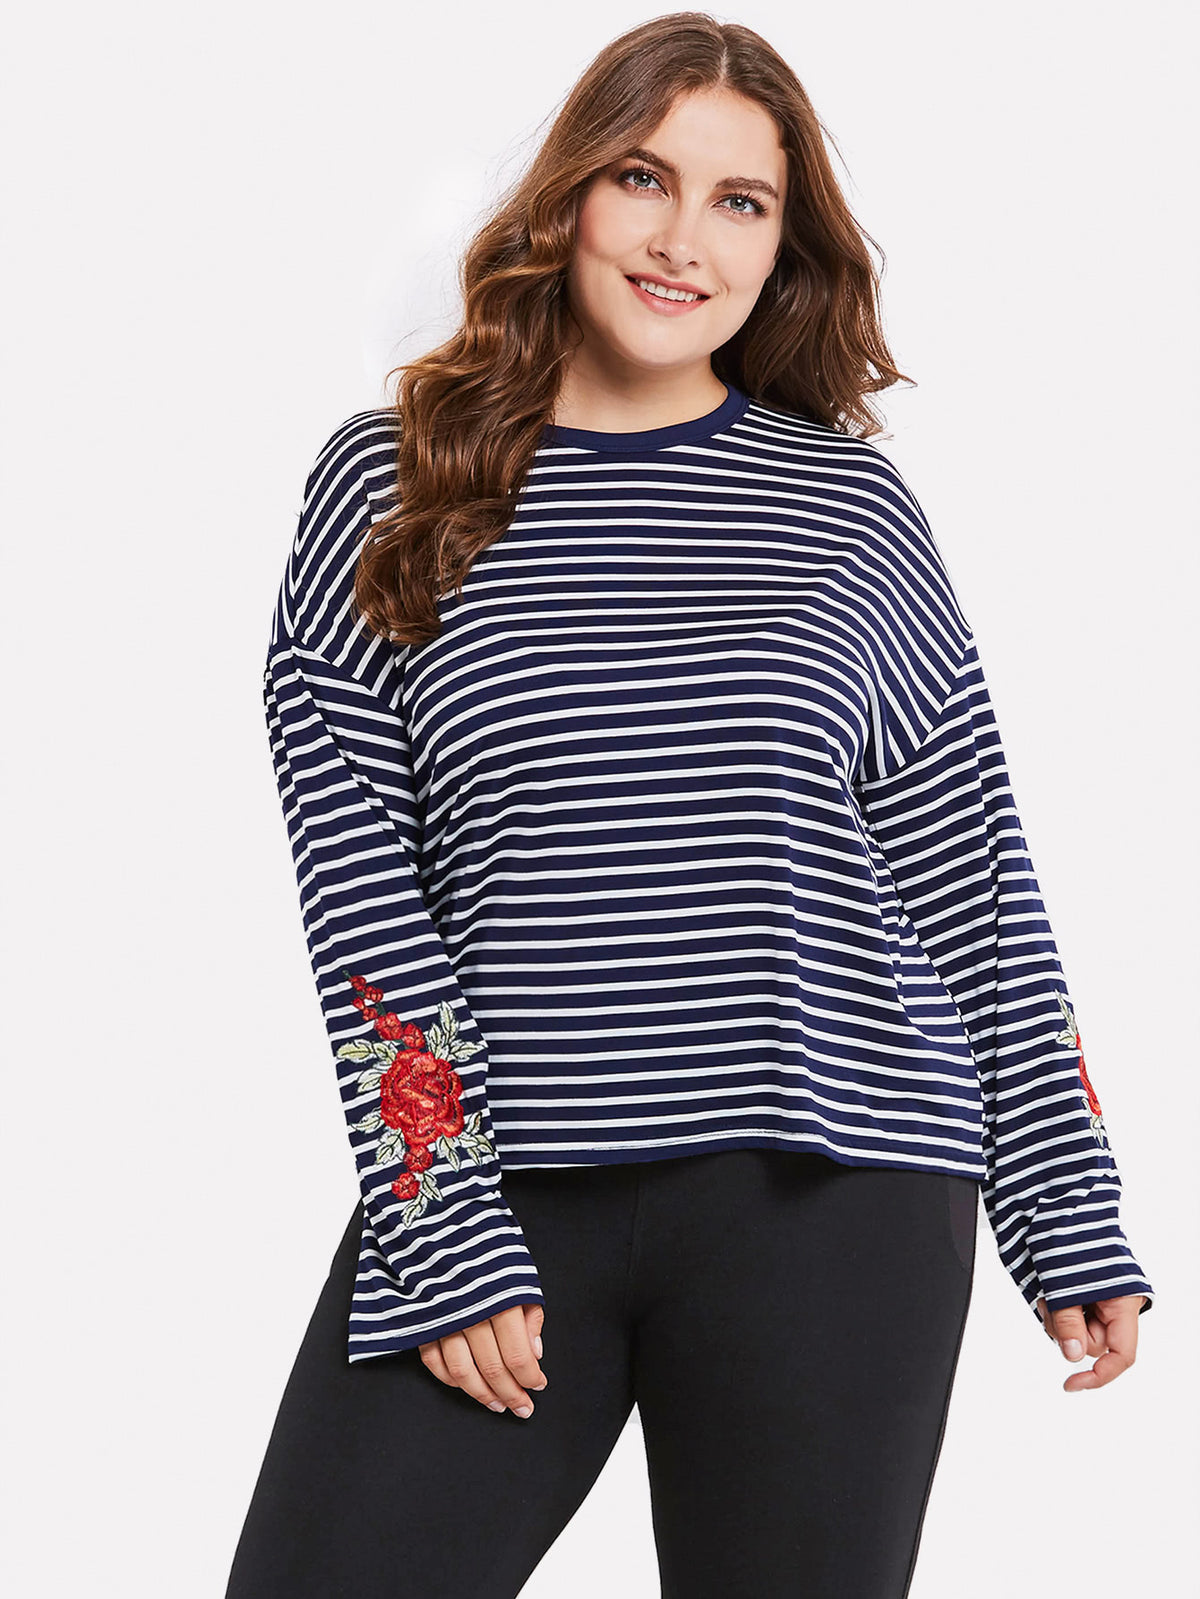 Contrast Stripe Embroidery Tshirt